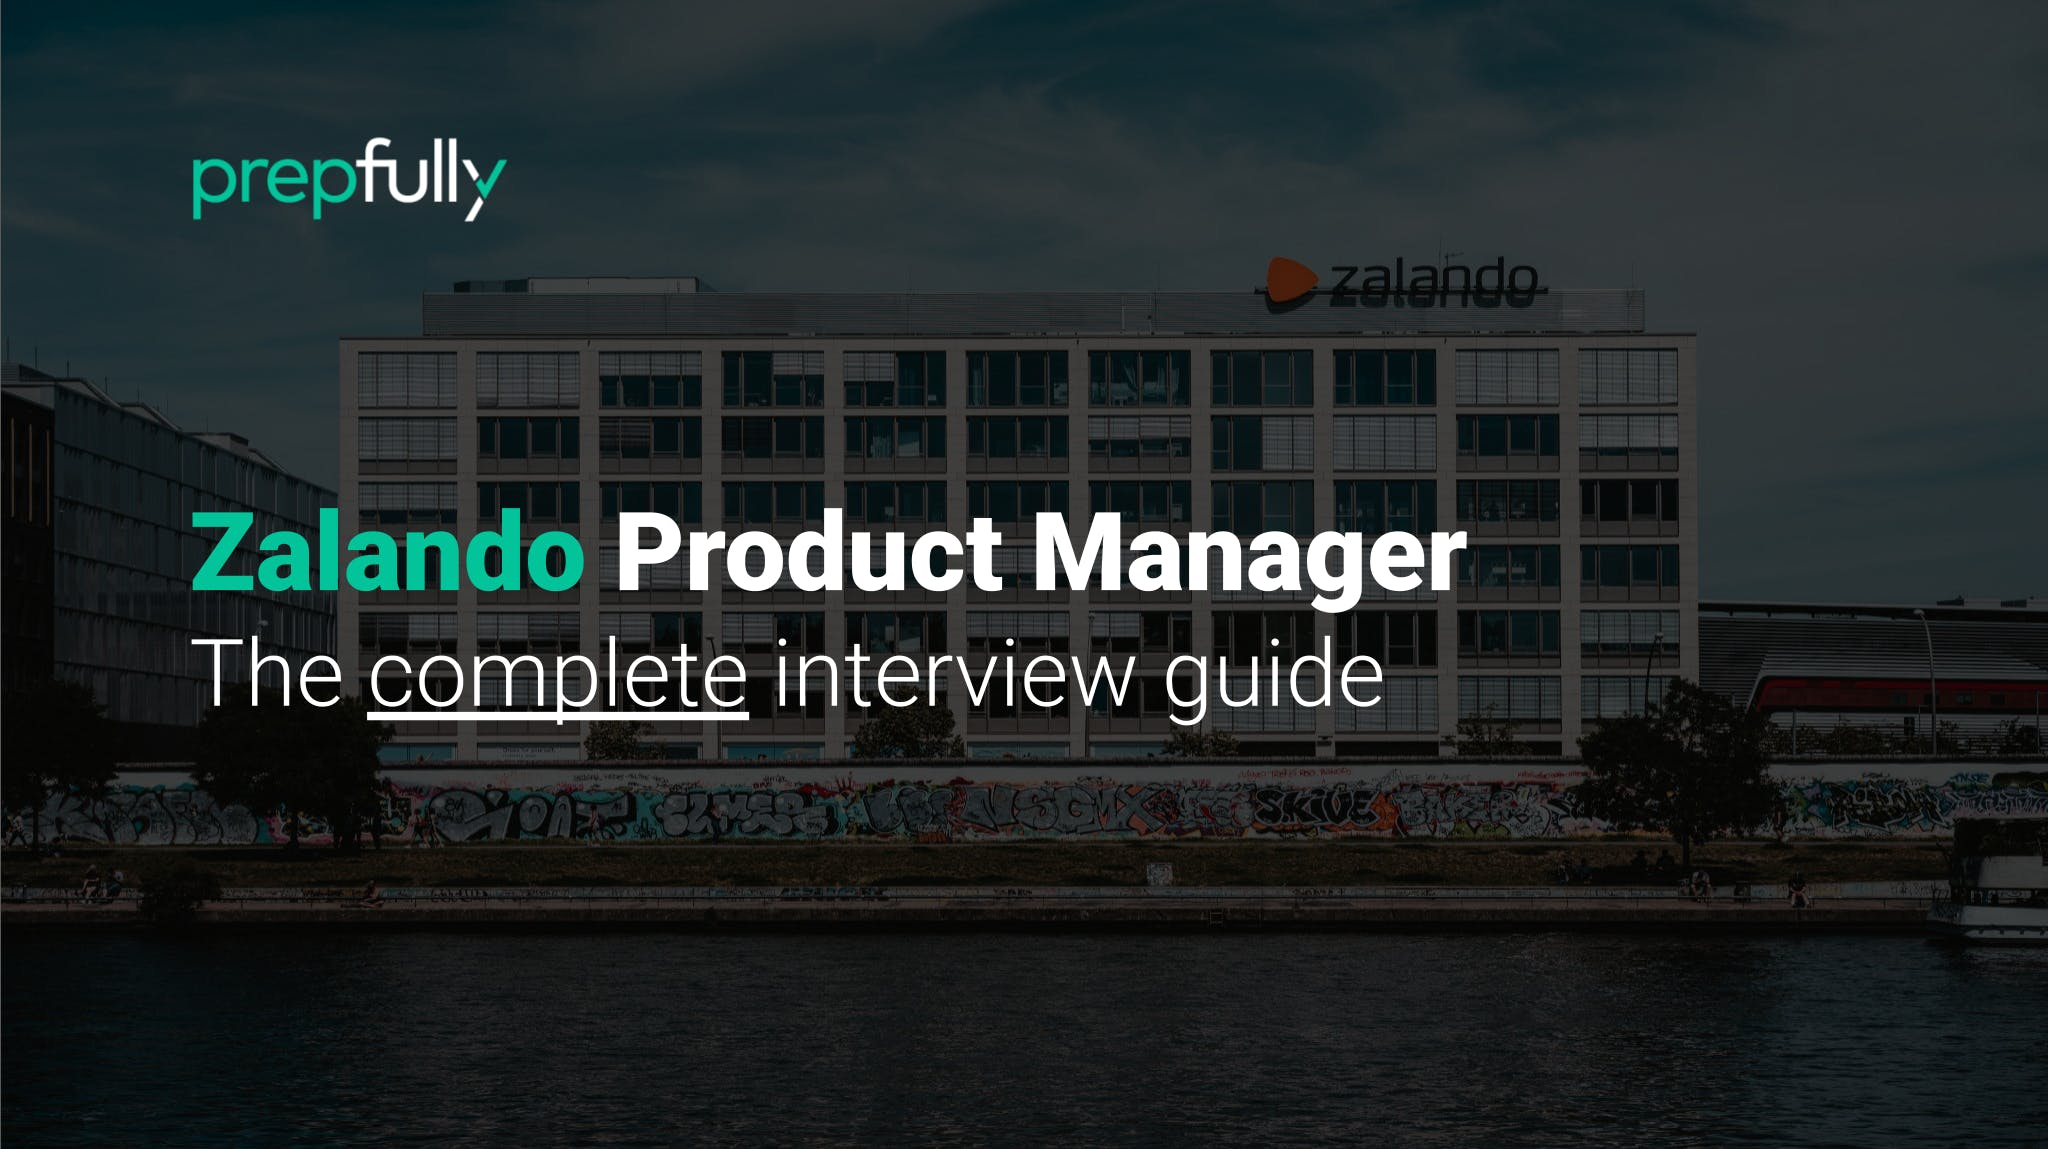 Interview guide for Zalando Product Manager